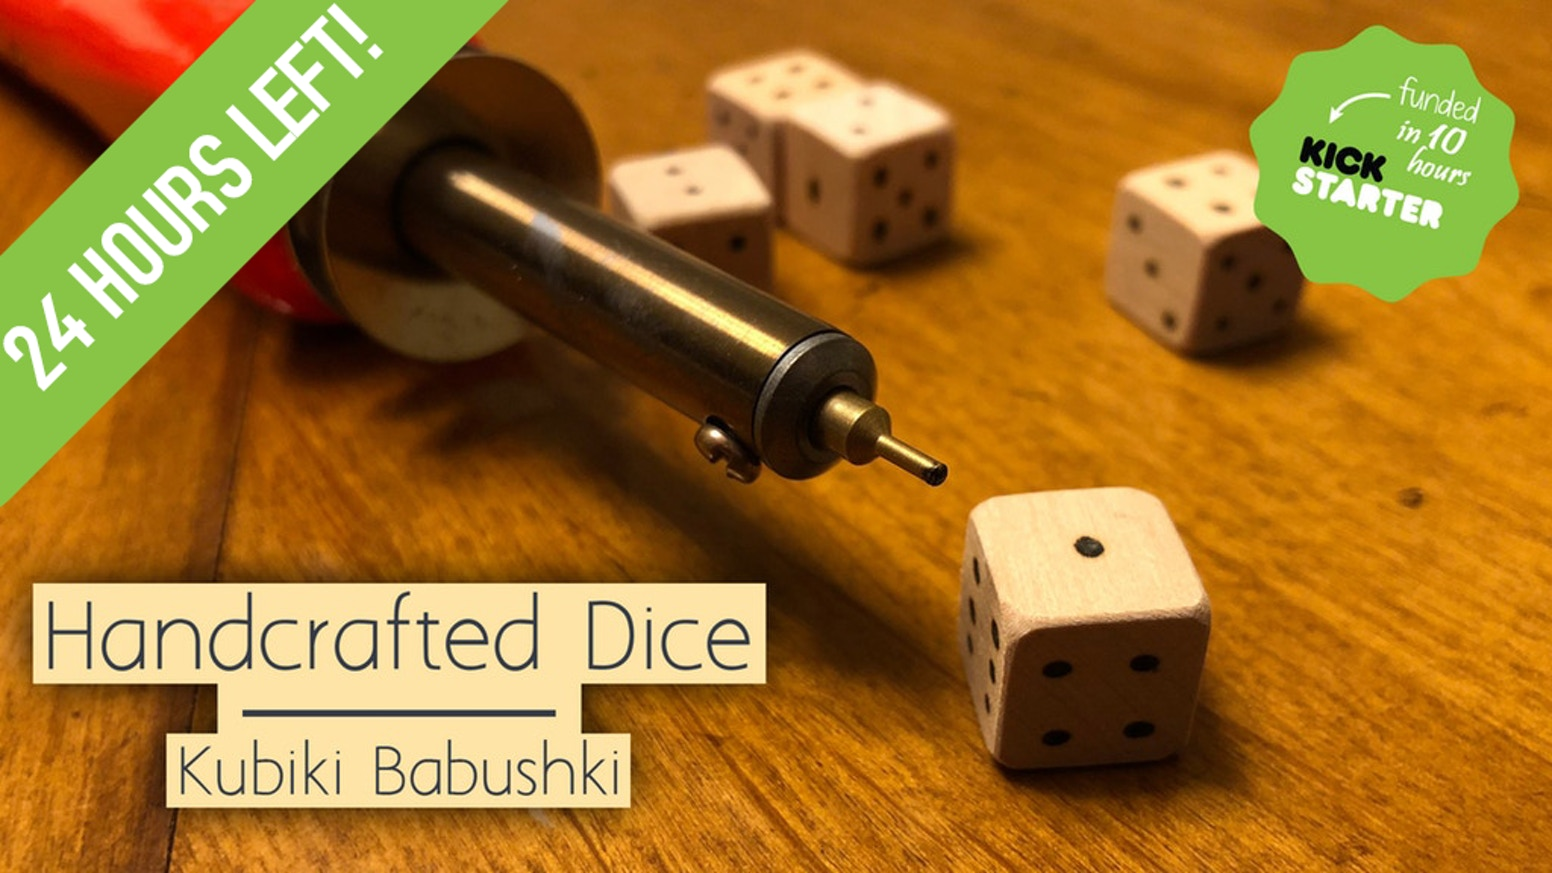 Simple and cheap handmade dice crafted to help bring families together during a game night. New card game coming next month!